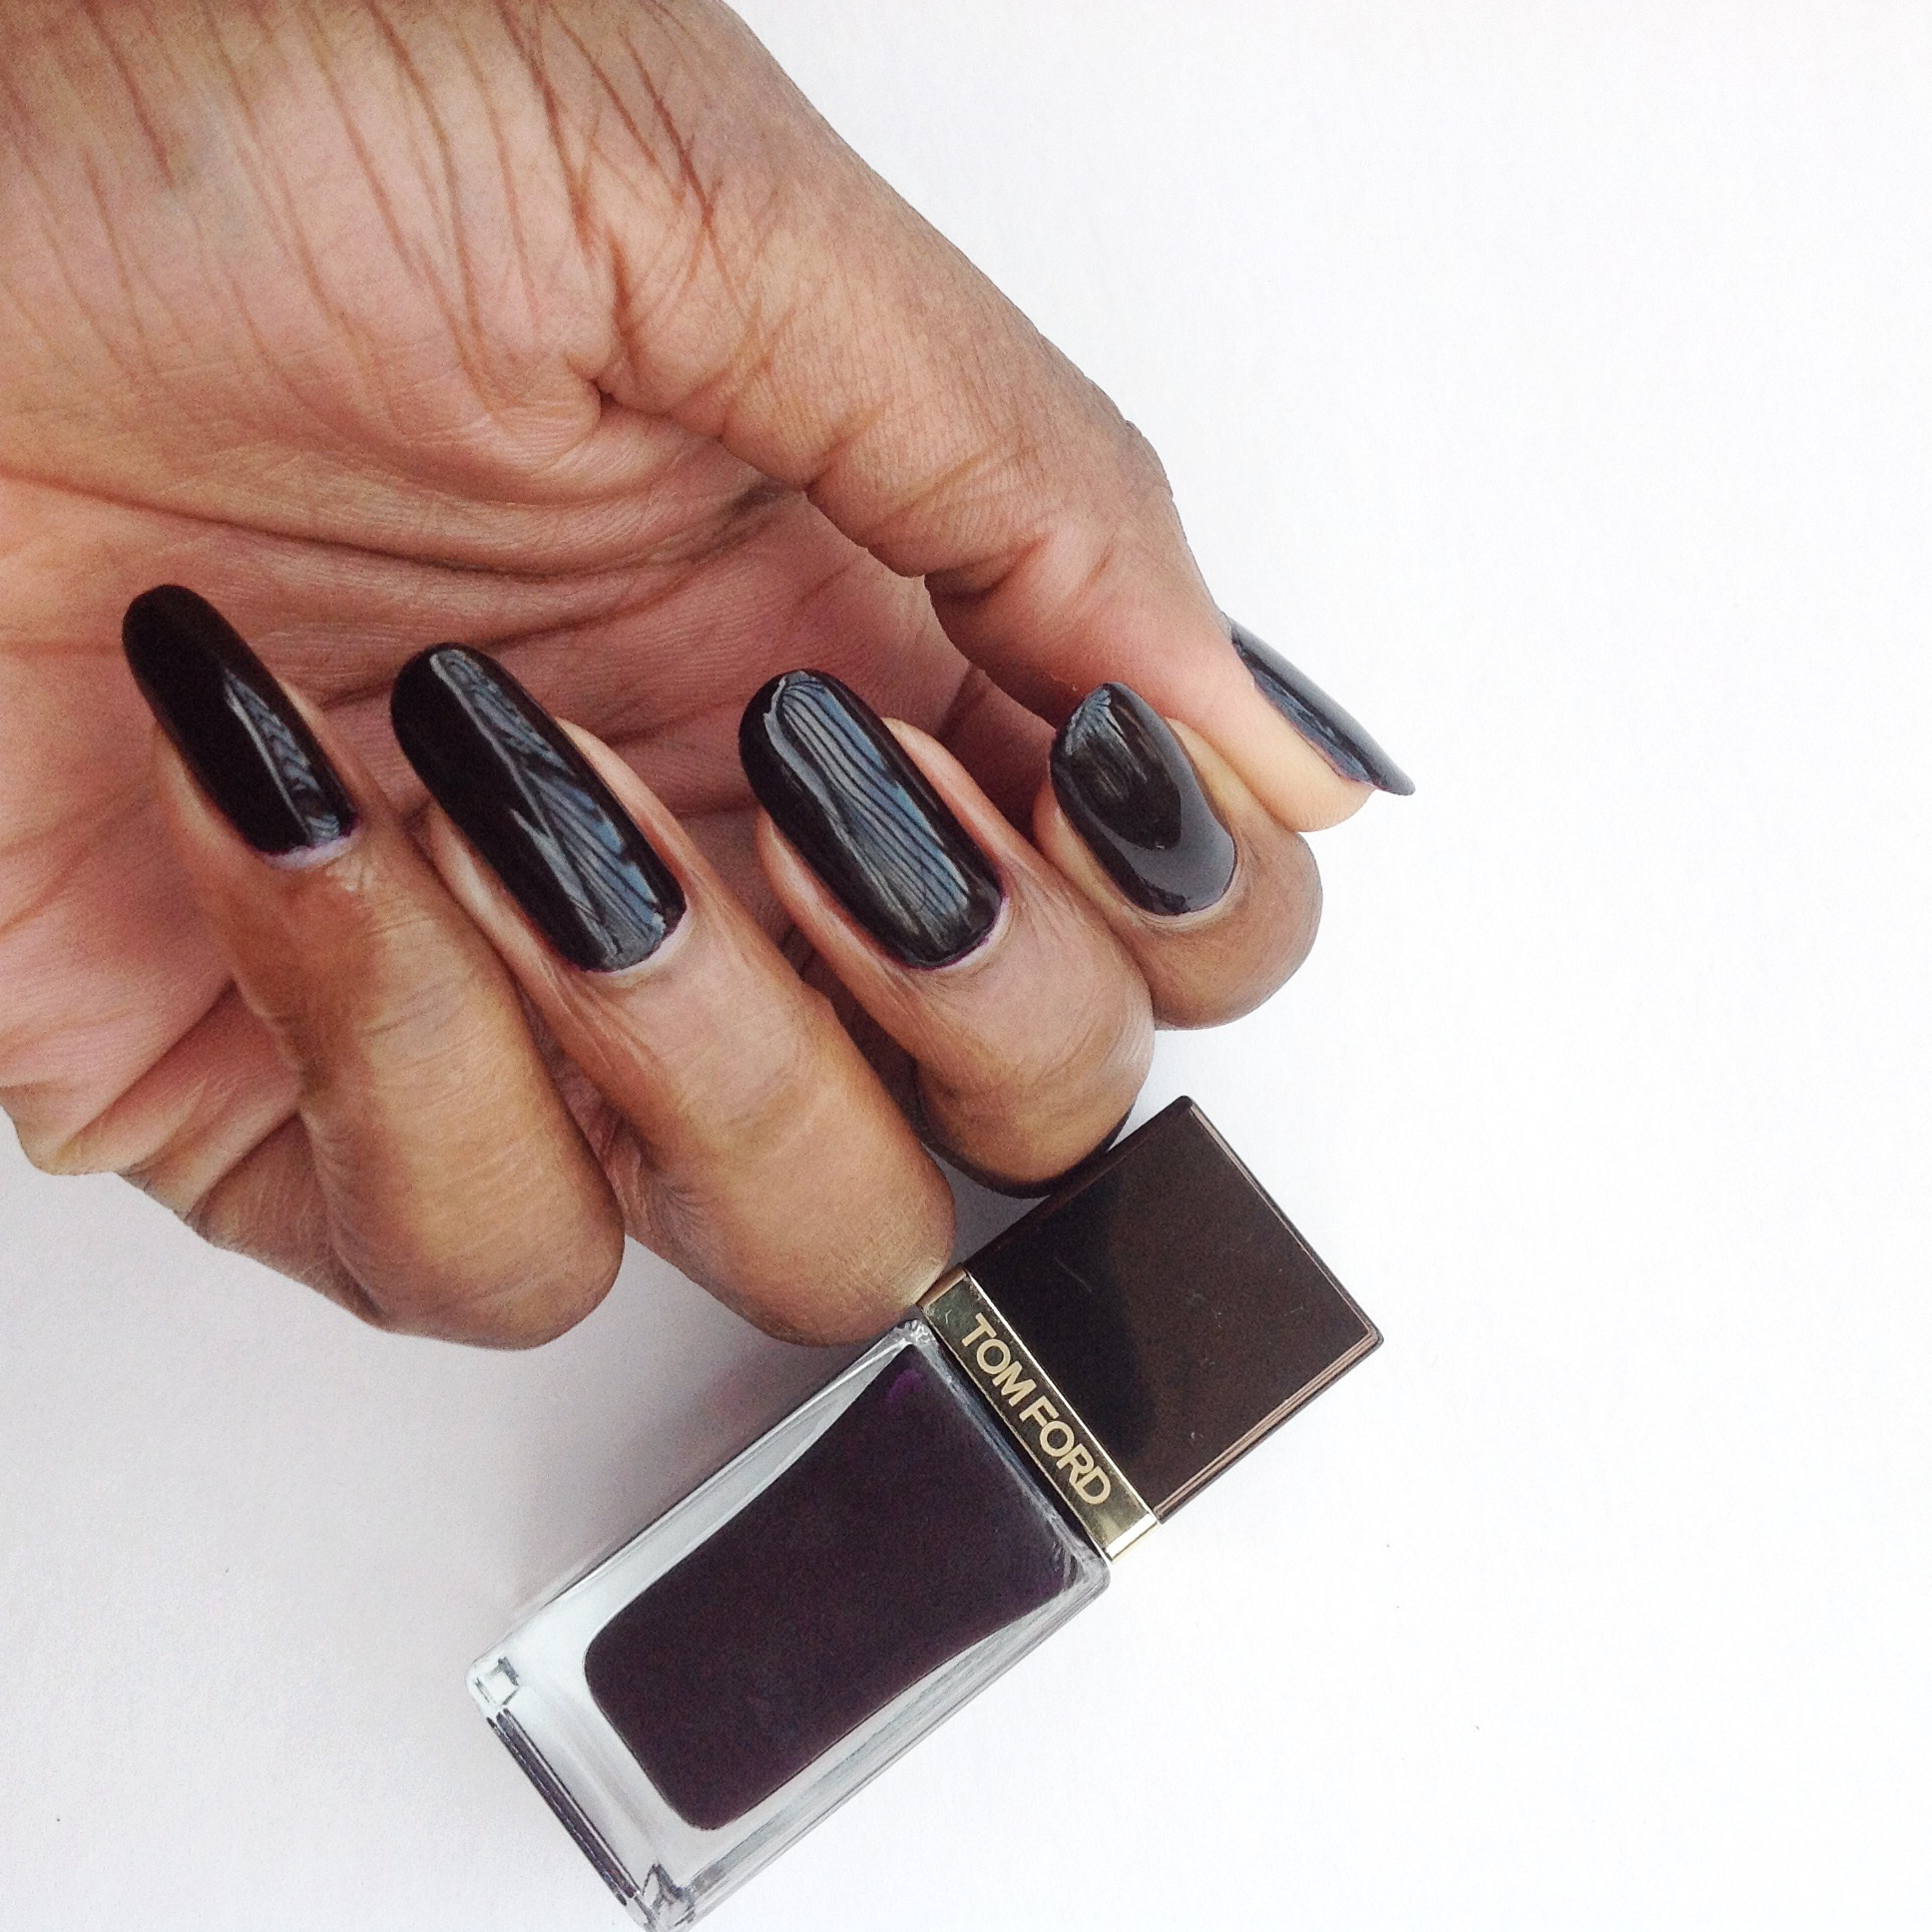 Mani of the Week: Featuring Tom Ford Black Cherry